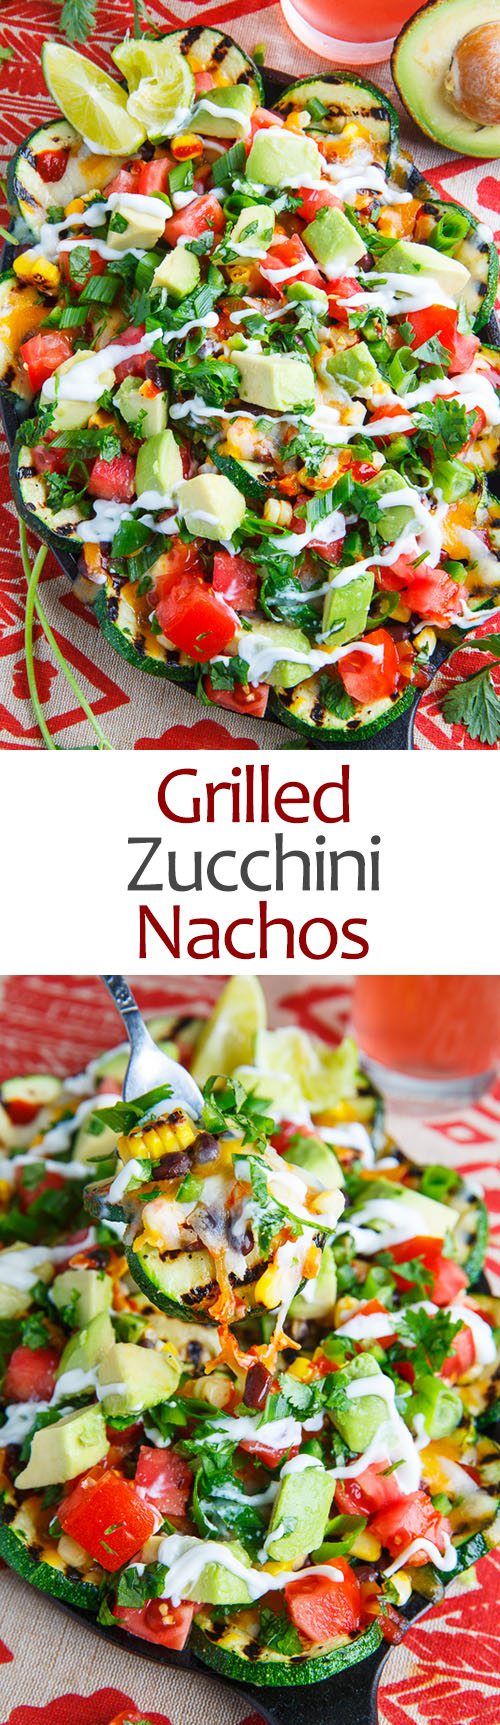 Grilled Zucchini Nachos on Closet Cooking